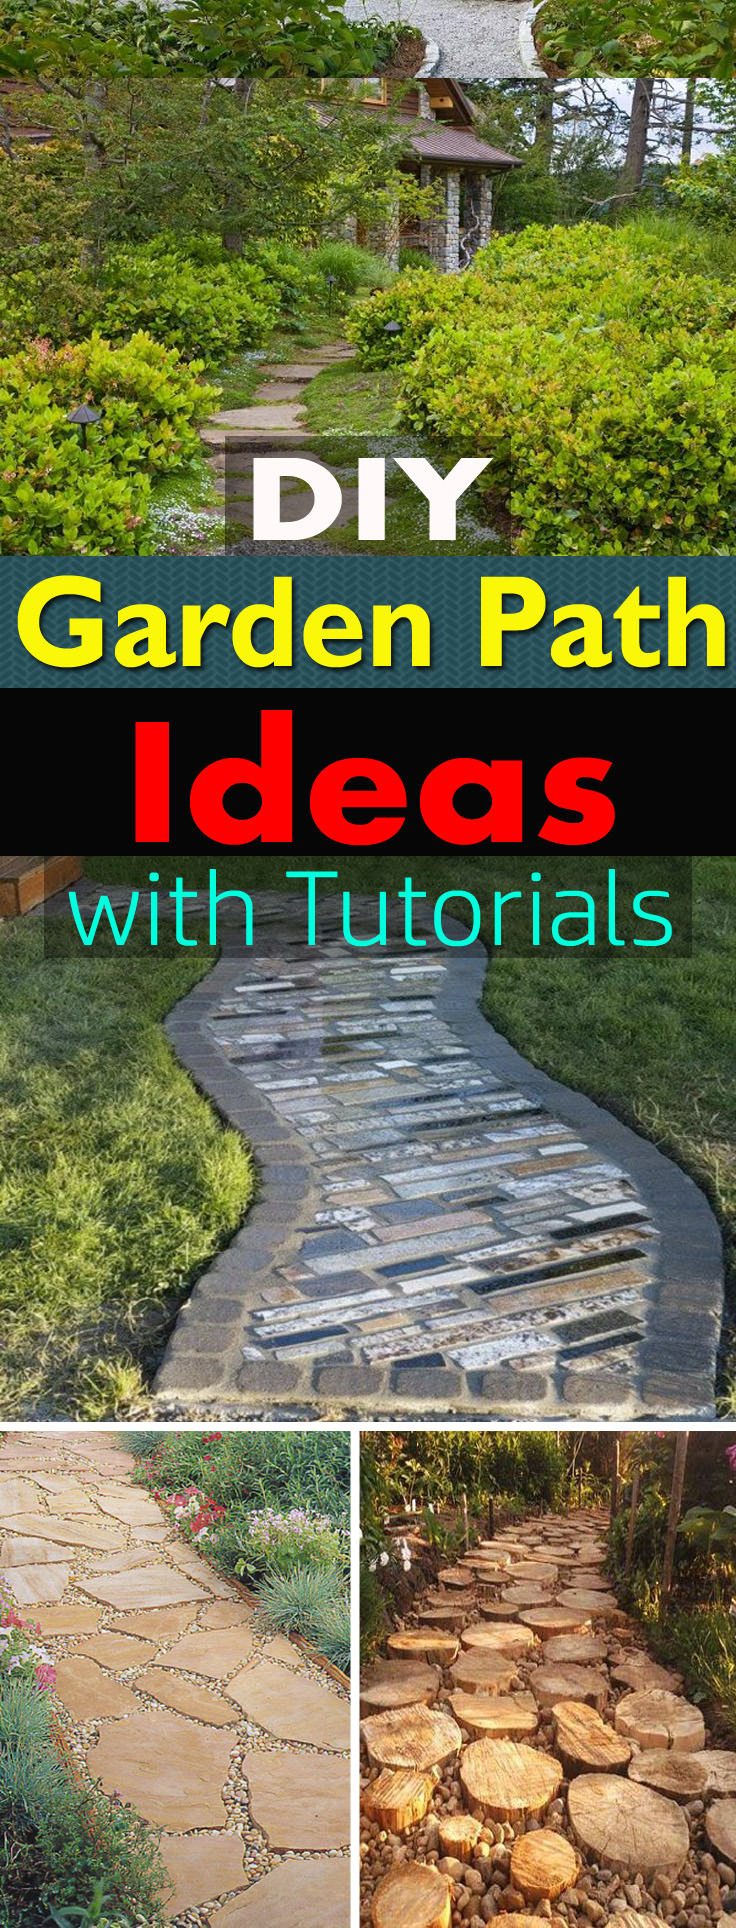 Pin It! Take Inspiration From The 19 DIY Garden Path Ideas ...